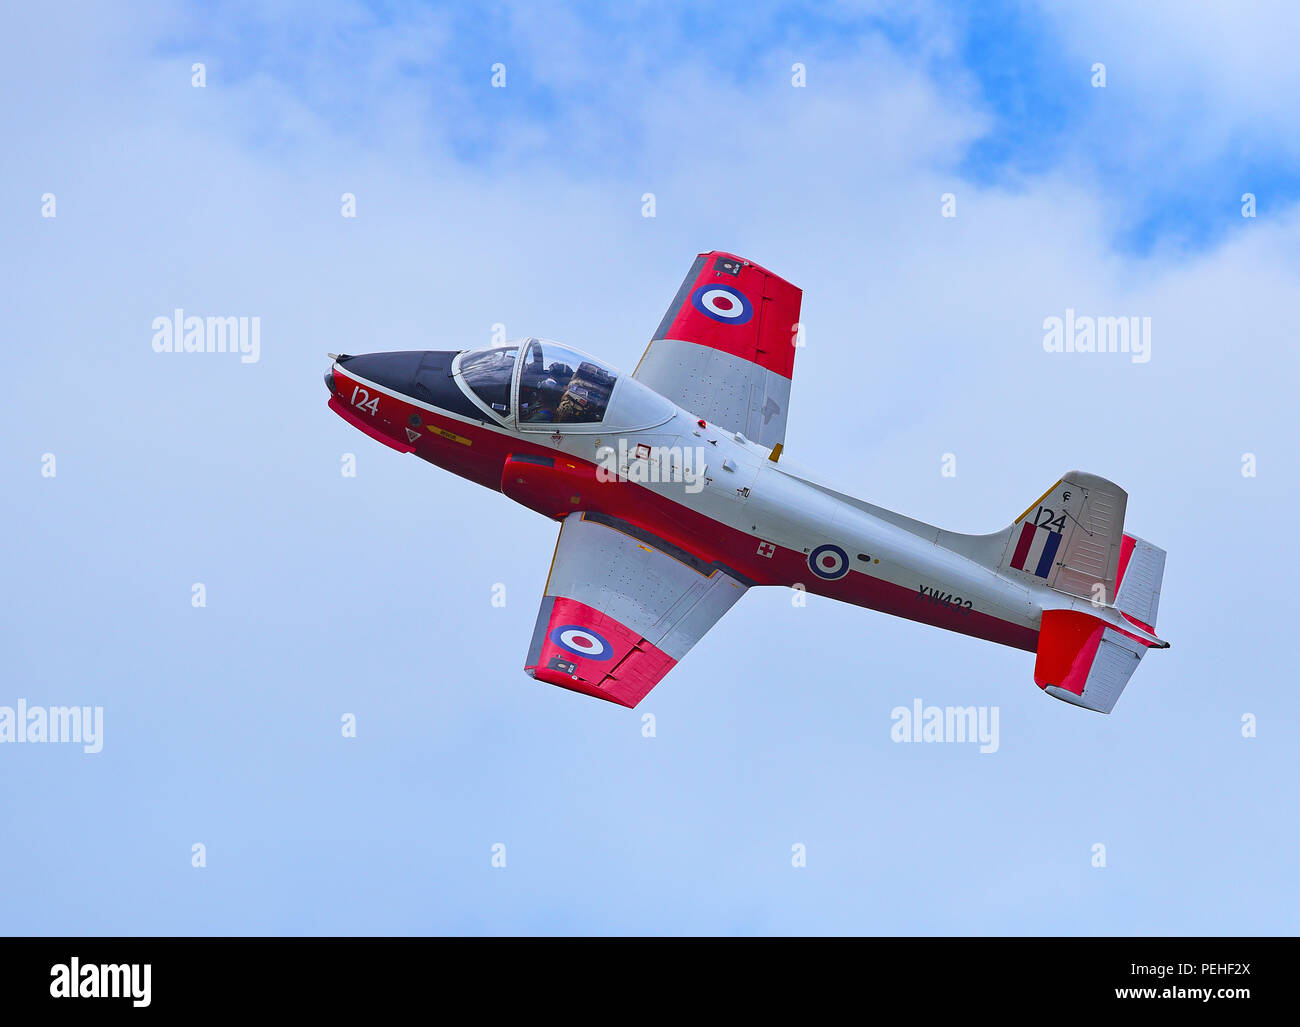 EX Military Jet Provost pilot trainer aircraft based at Inverness Airport available for flights up to an hour for fee paying passengers. - Stock Image